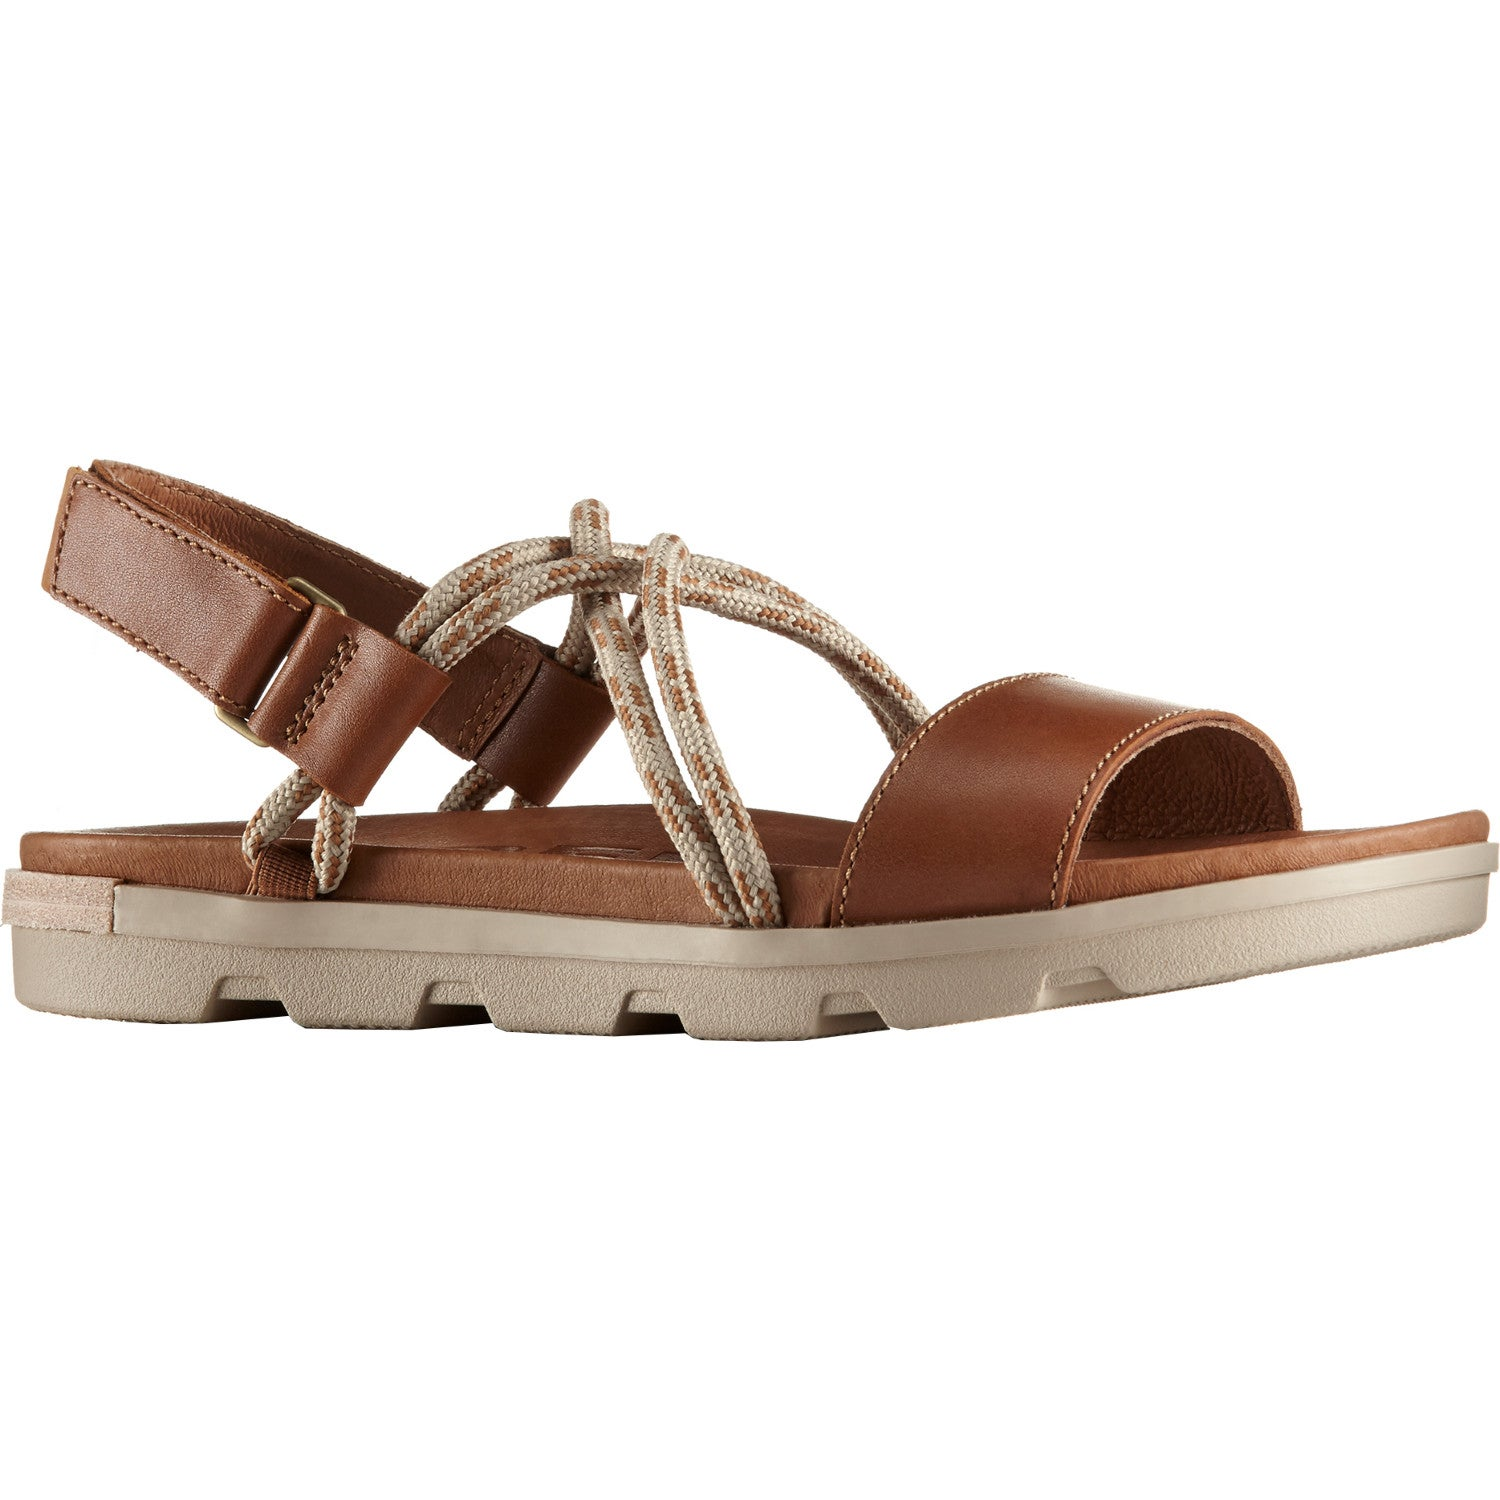 44bc43bec67 Footwear Sale available from Blackleaf